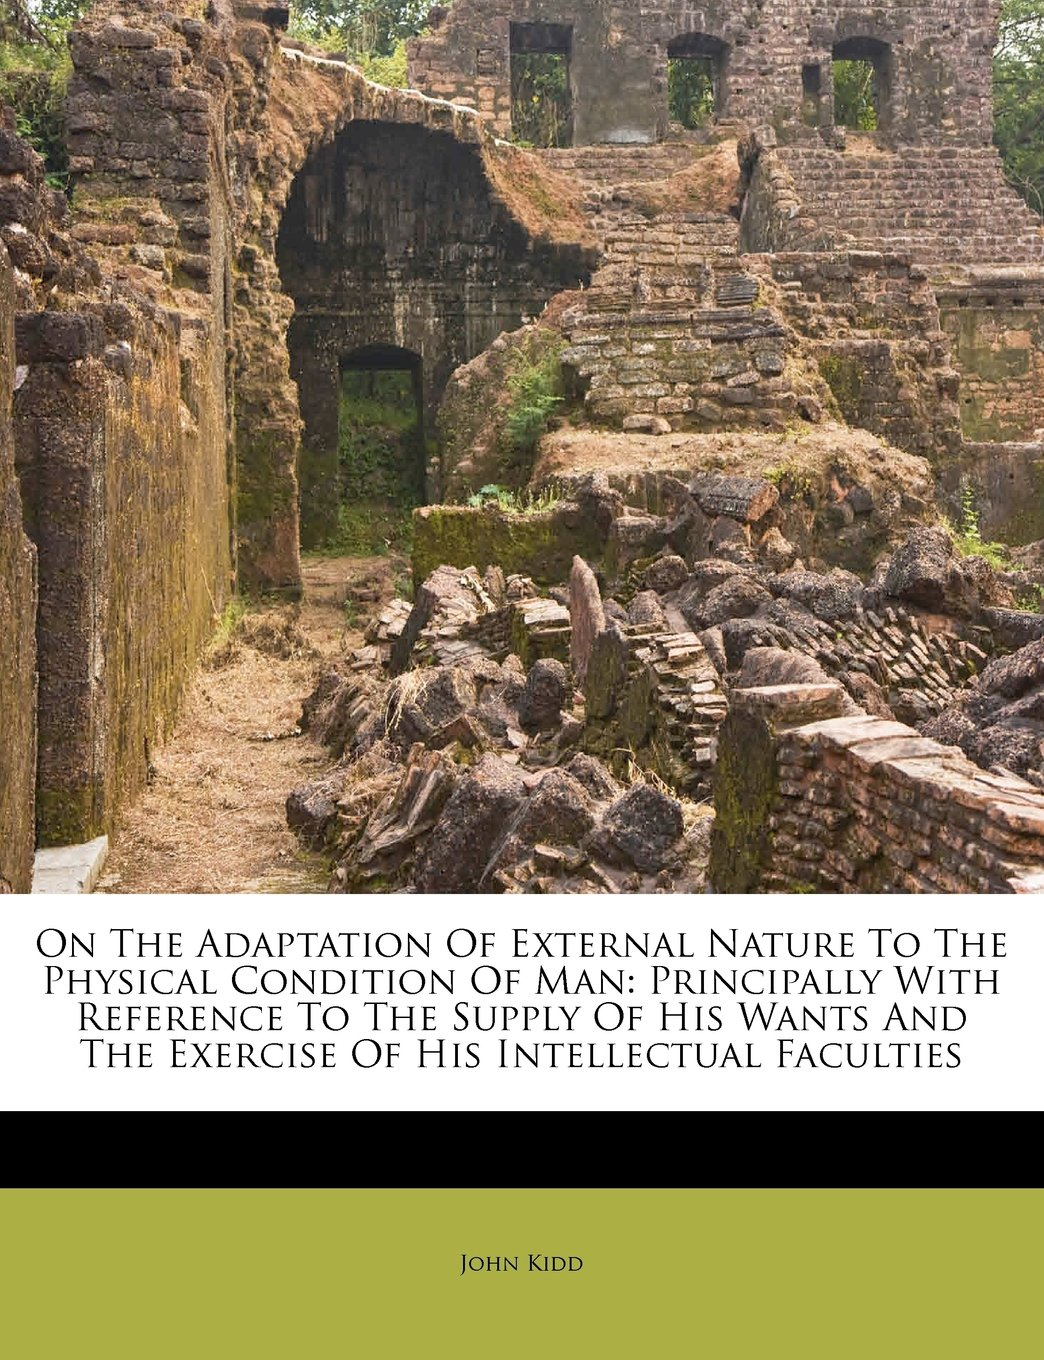 On The Adaptation Of External Nature To The Physical Condition Of Man: Principally With Reference To The Supply Of His Wants And The Exercise Of His Intellectual Faculties pdf